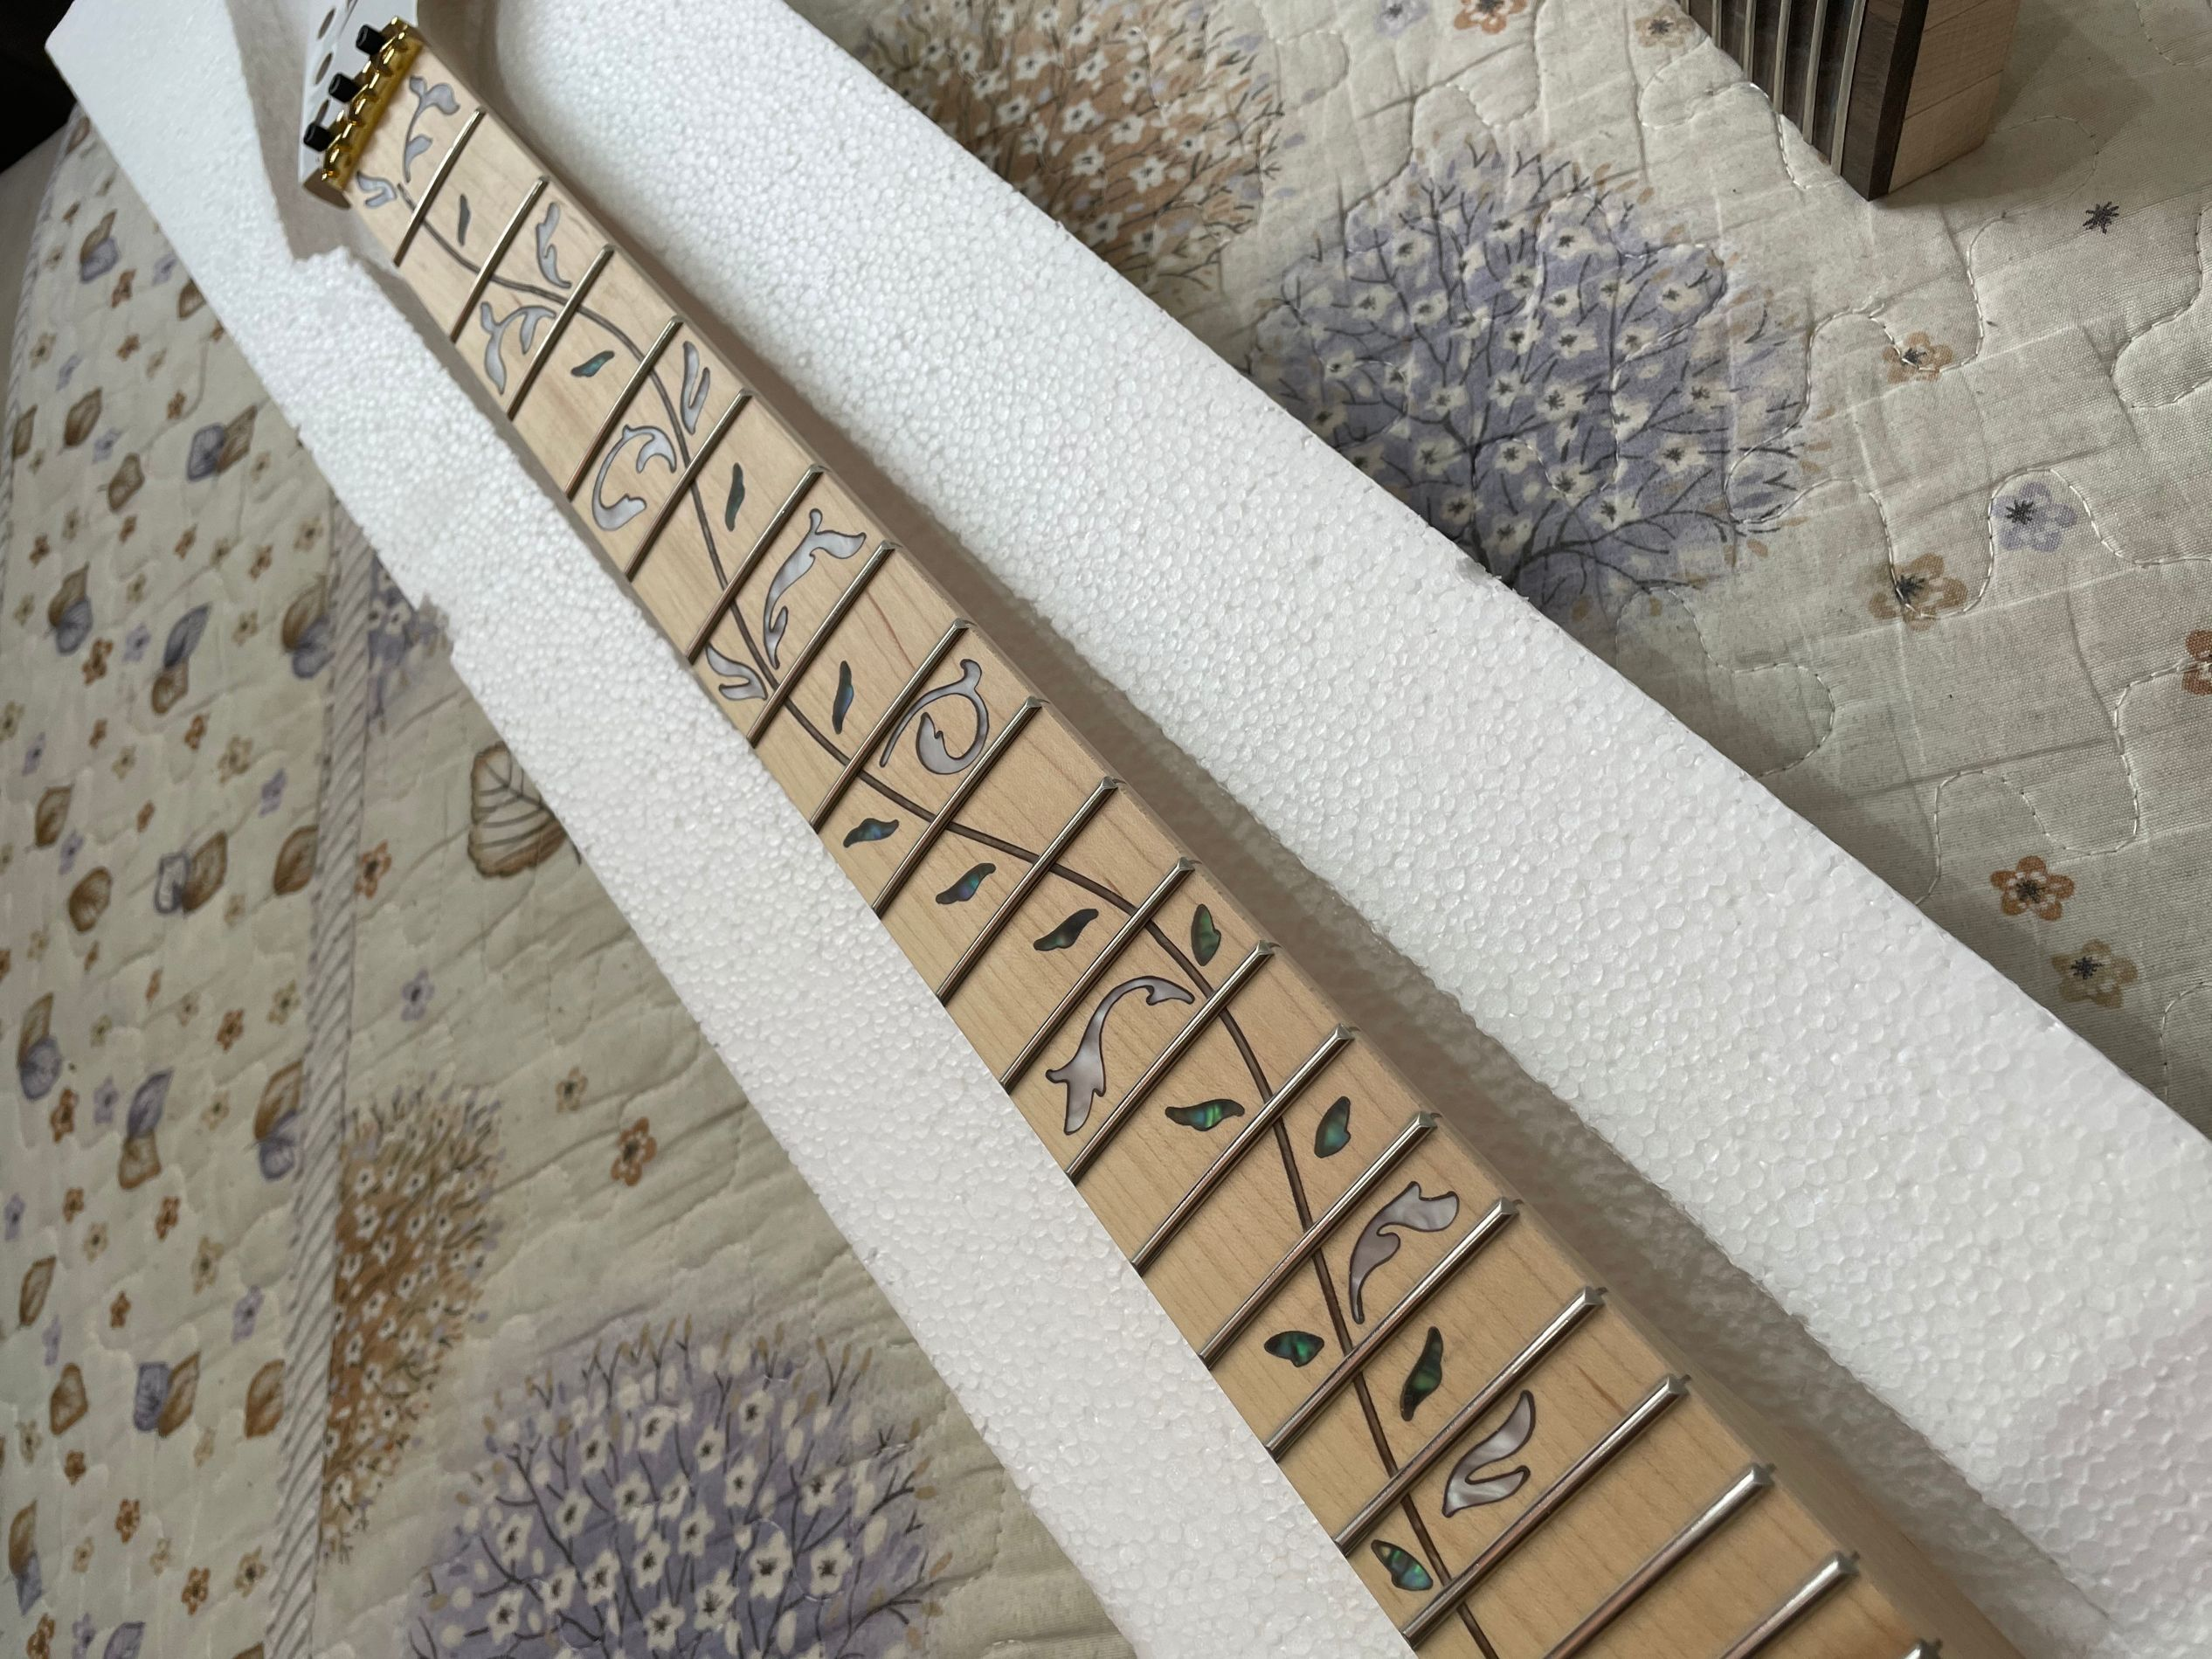 Factory custom maple  fingerboard 24 frets electric guitar neck with the tree of life onlay,21-24 scalloped neck, enlarge